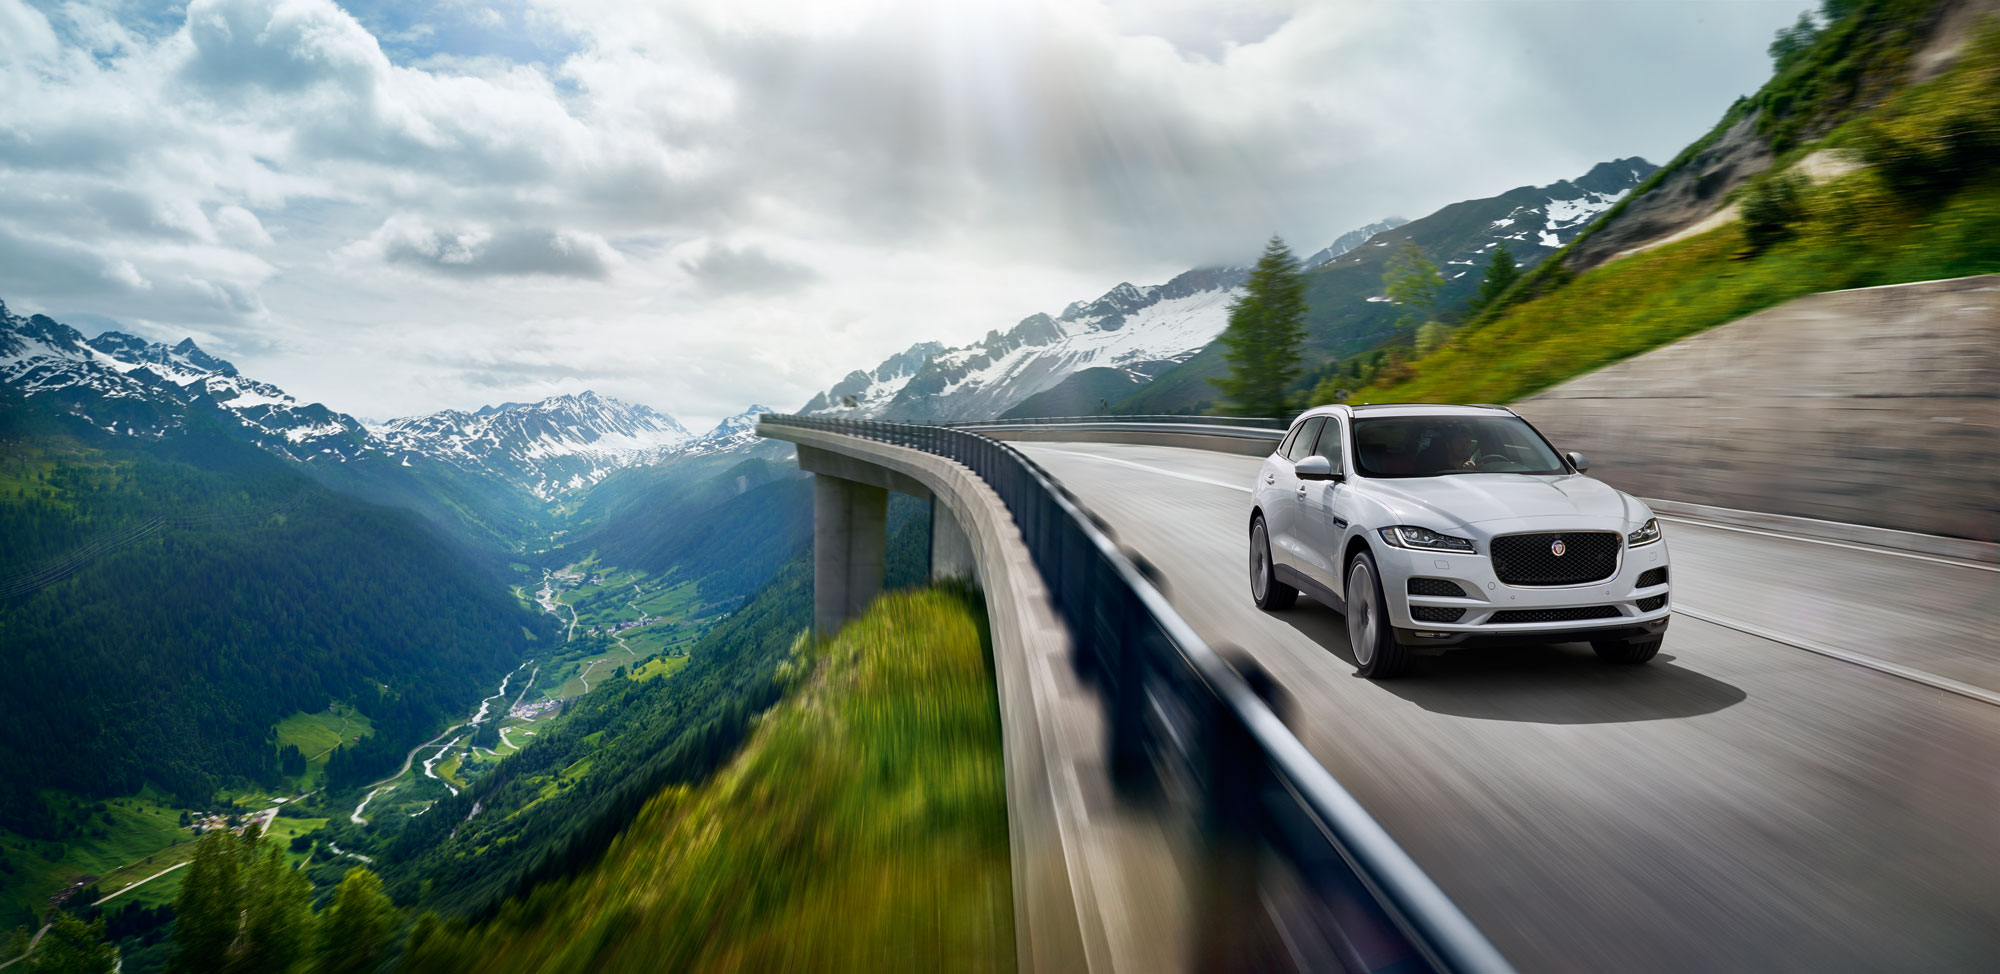 With a sporty aesthetic, the F-Pace borrows its sporty design sensibilities and commendable performance from the highly sought after Jaguar F-Type.